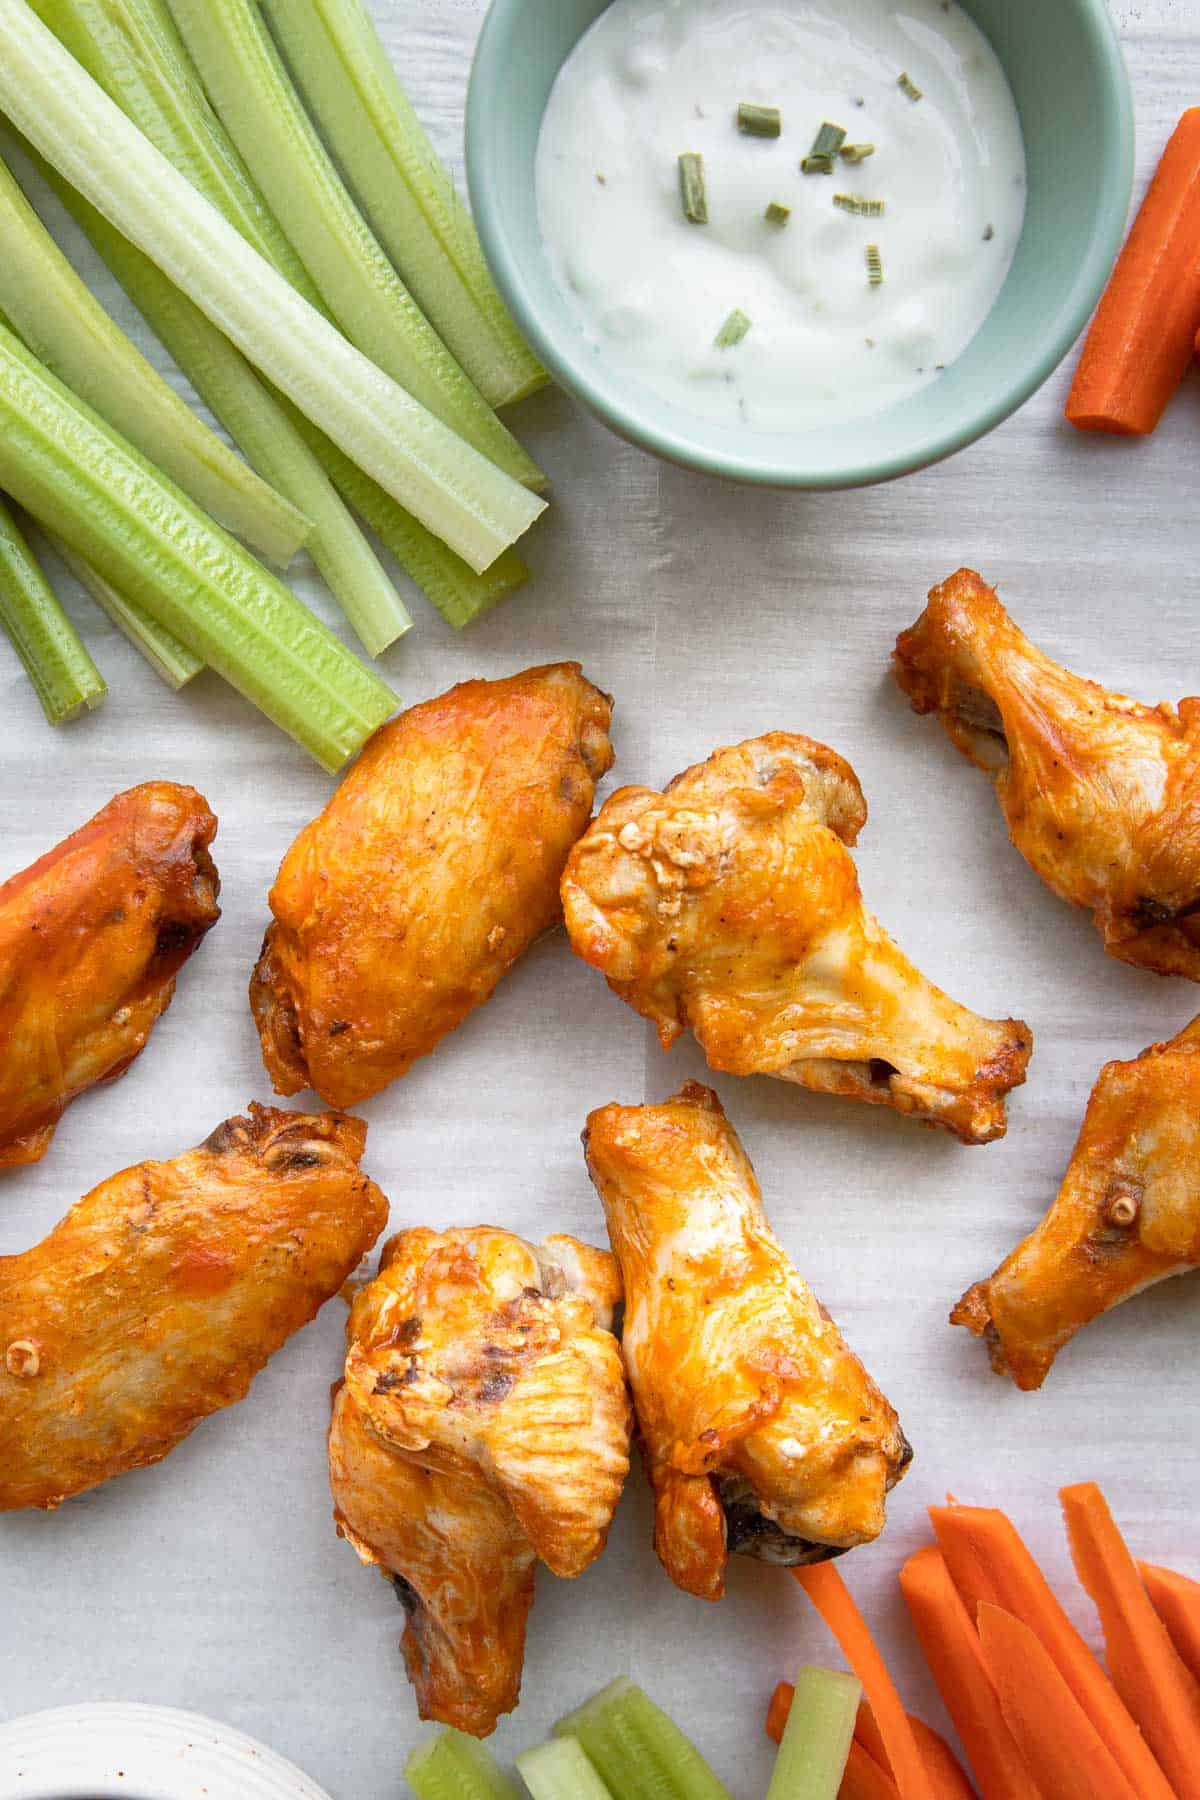 wing on a parchement paper with celery sticks, carrot sticks, and dip